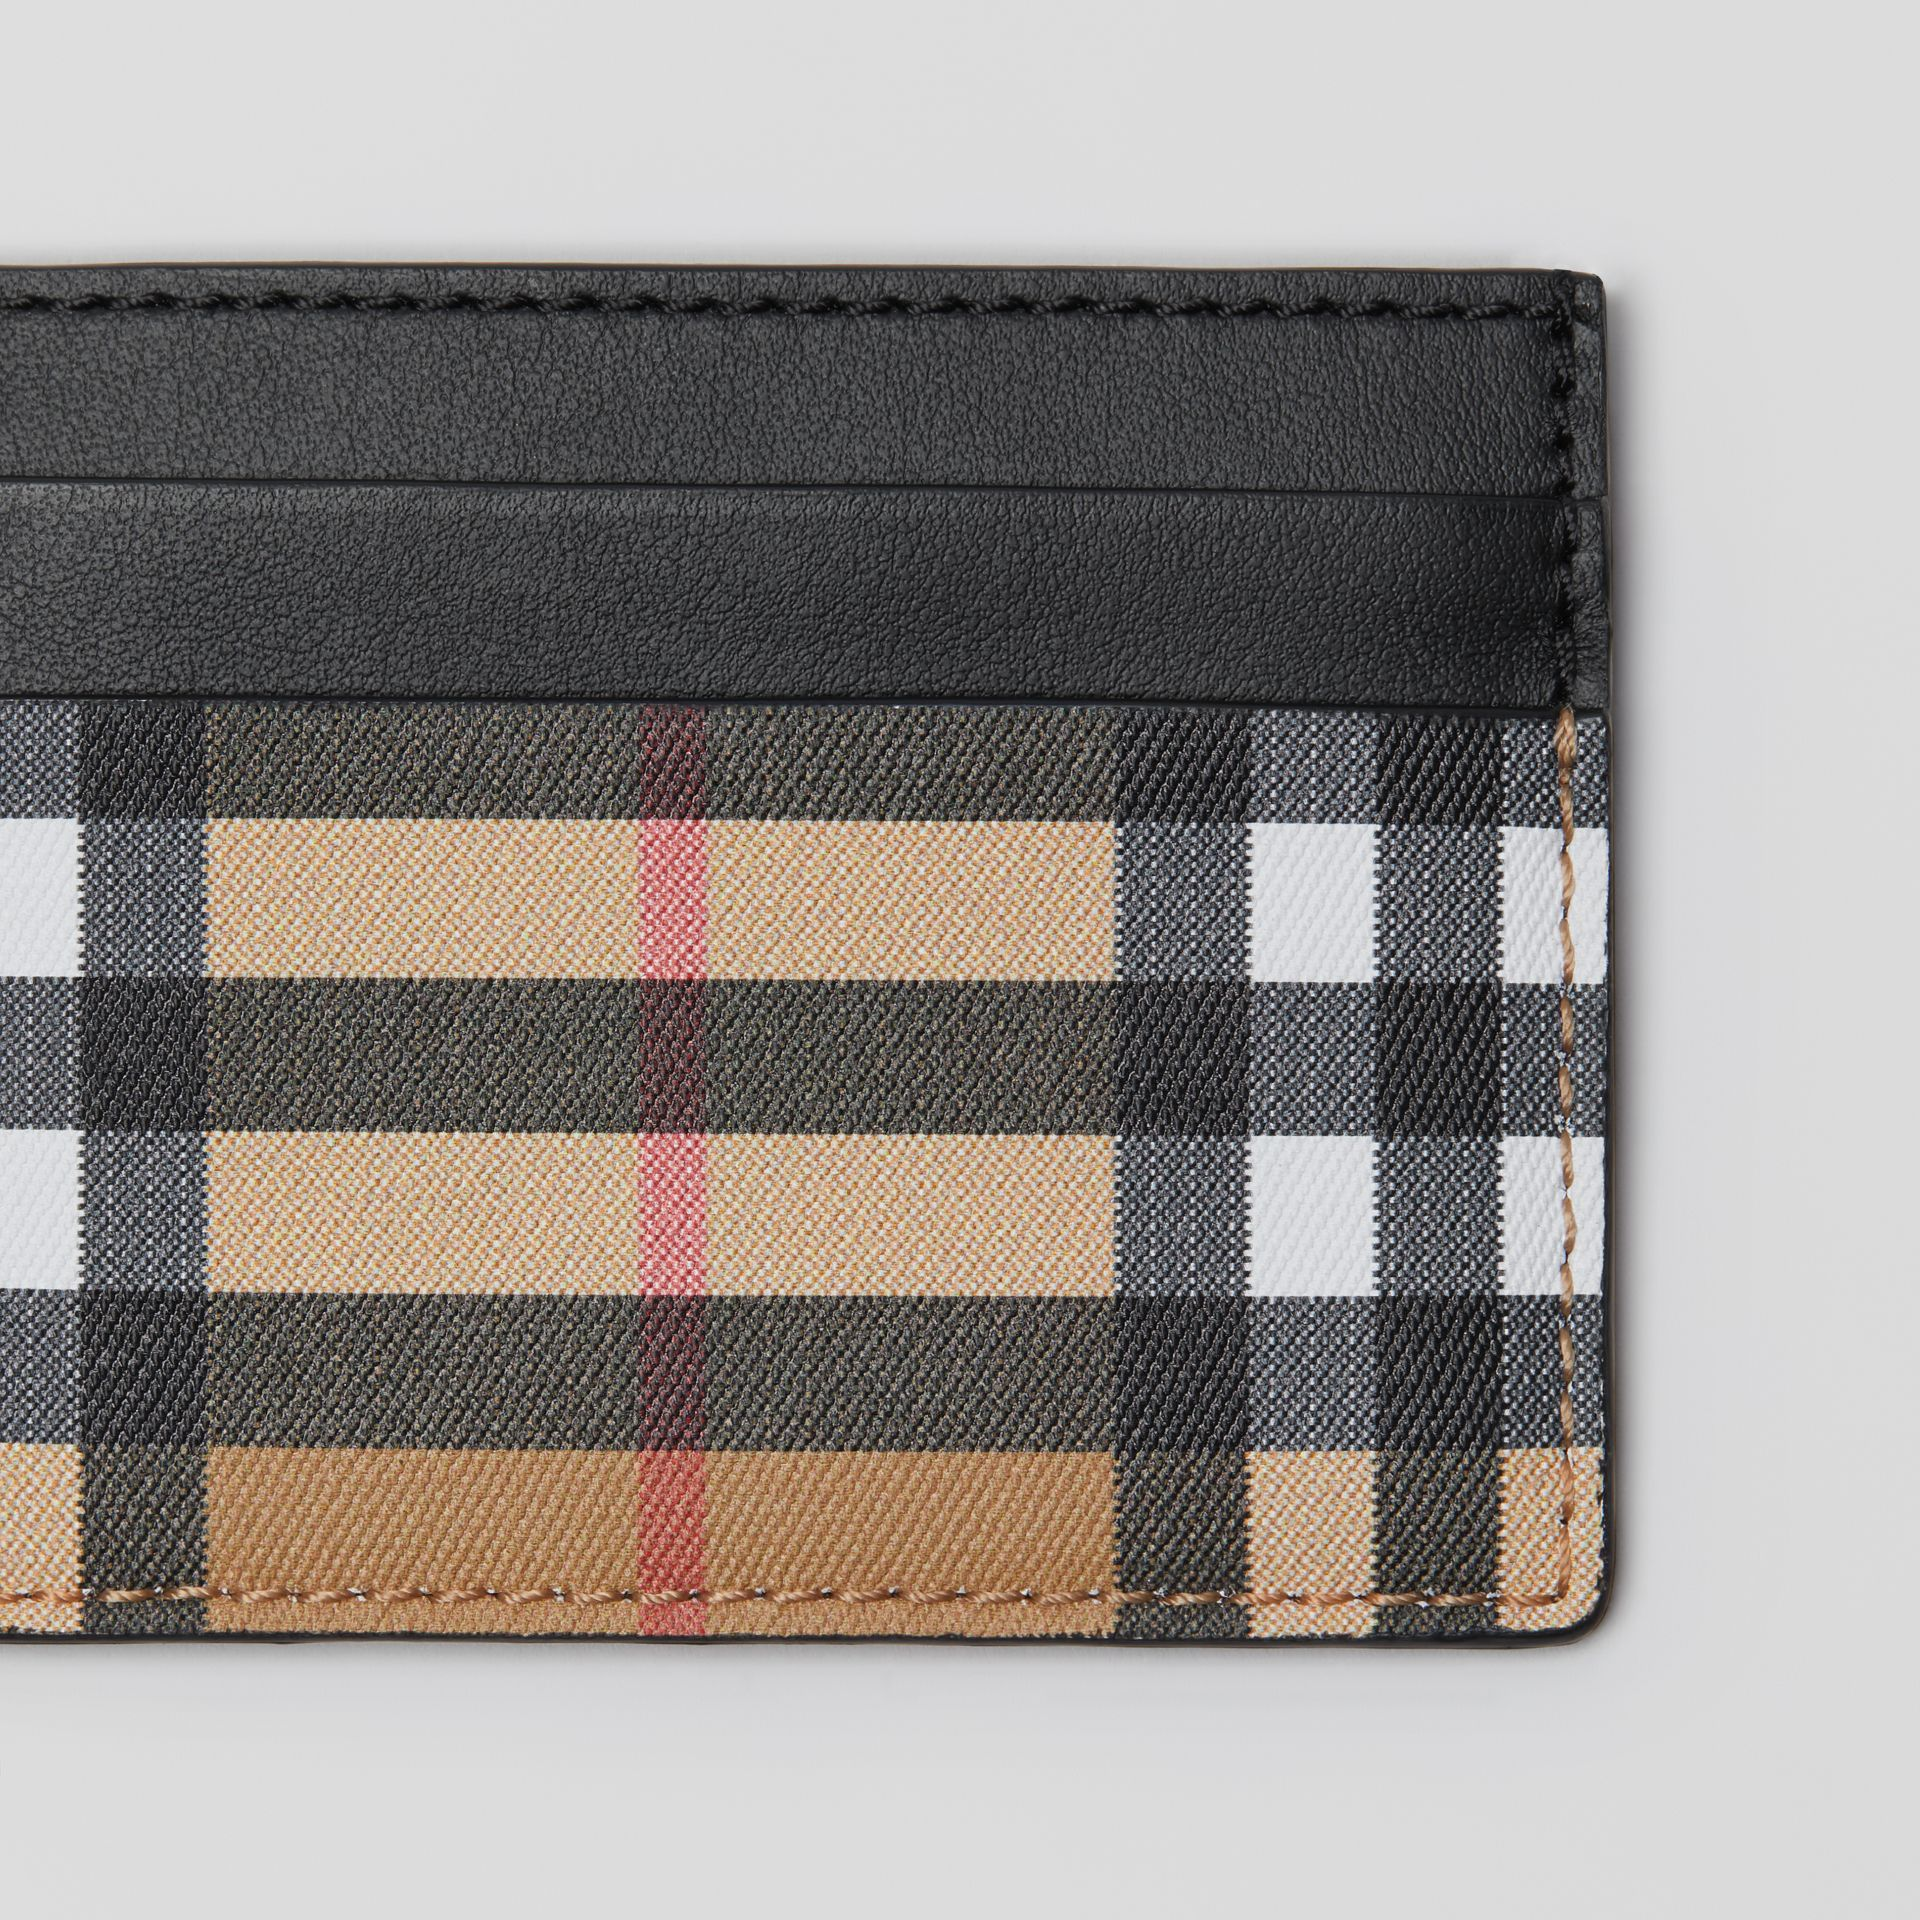 Vintage Check Leather Card Case in Black - Women | Burberry - gallery image 1